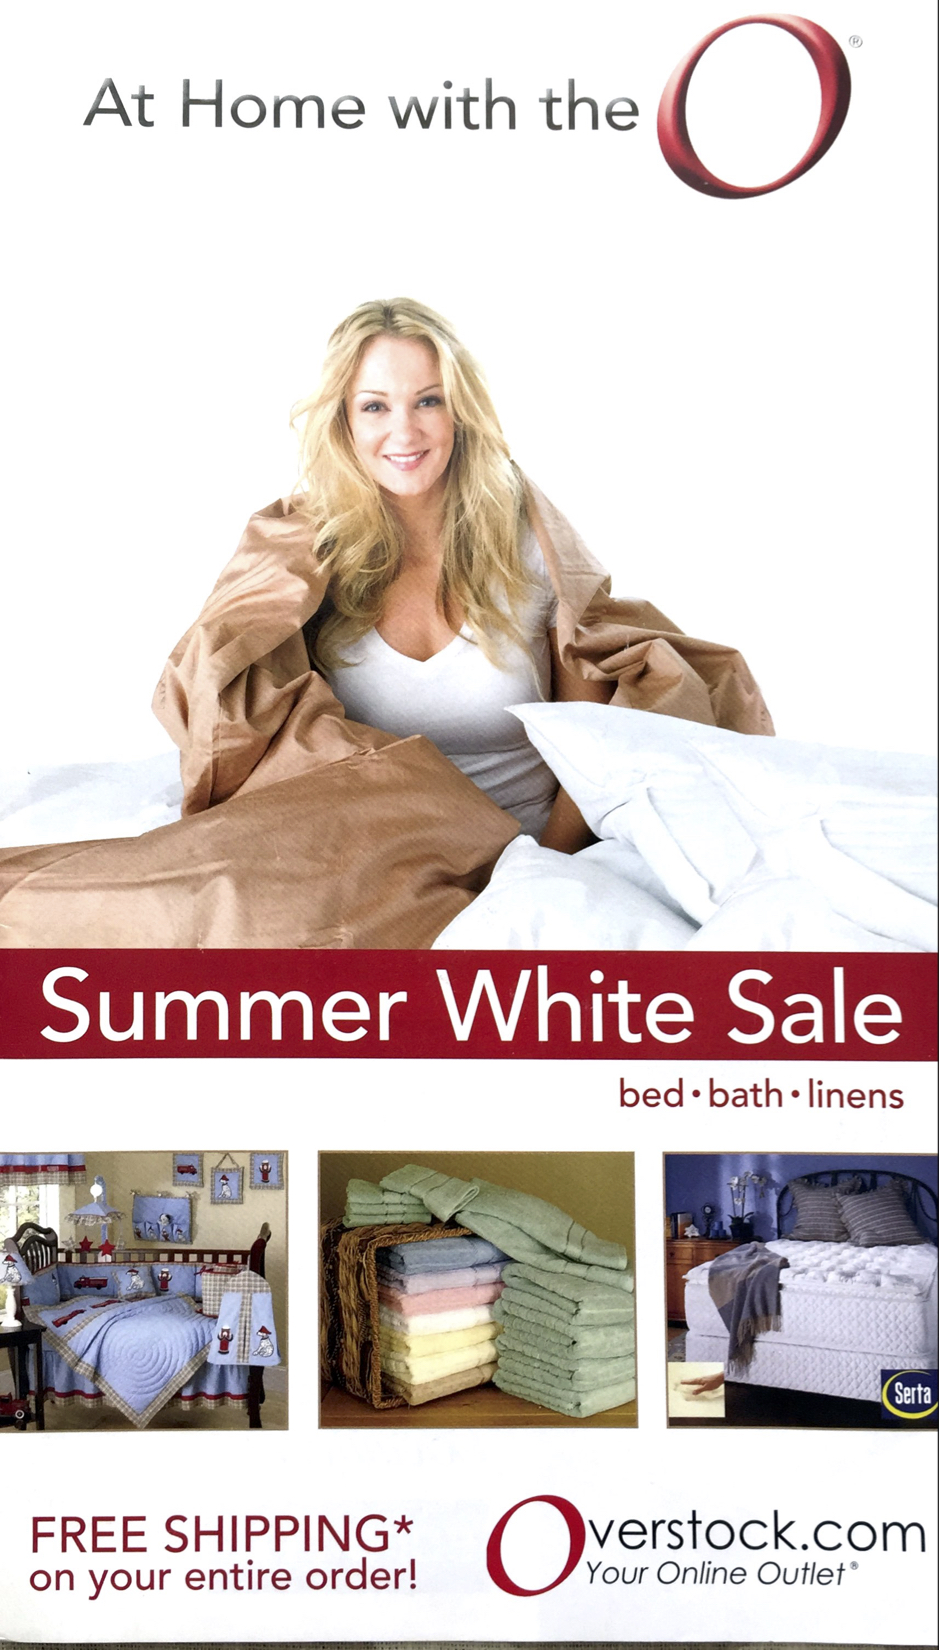 Summer White Sale copy.jpg